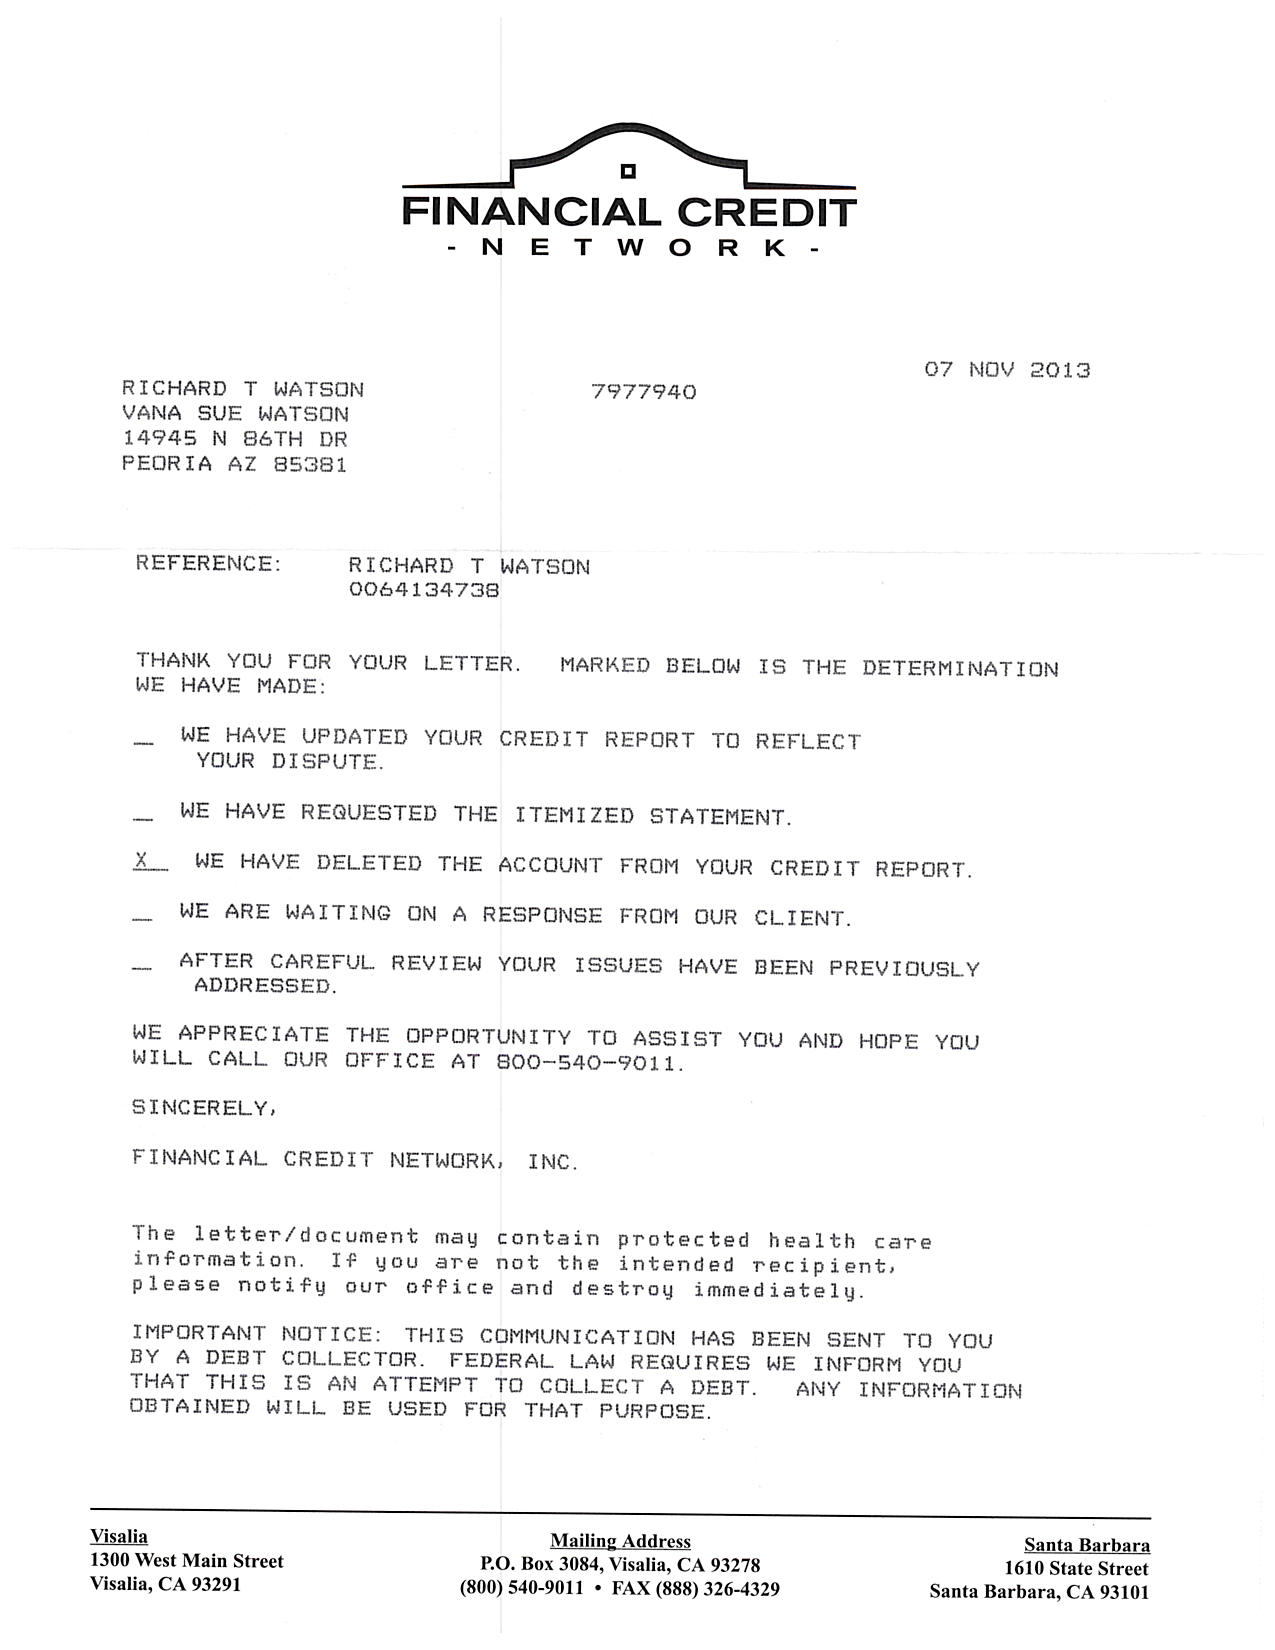 free credit repair letters templates - sample letter to credit bureau to remove paid collection